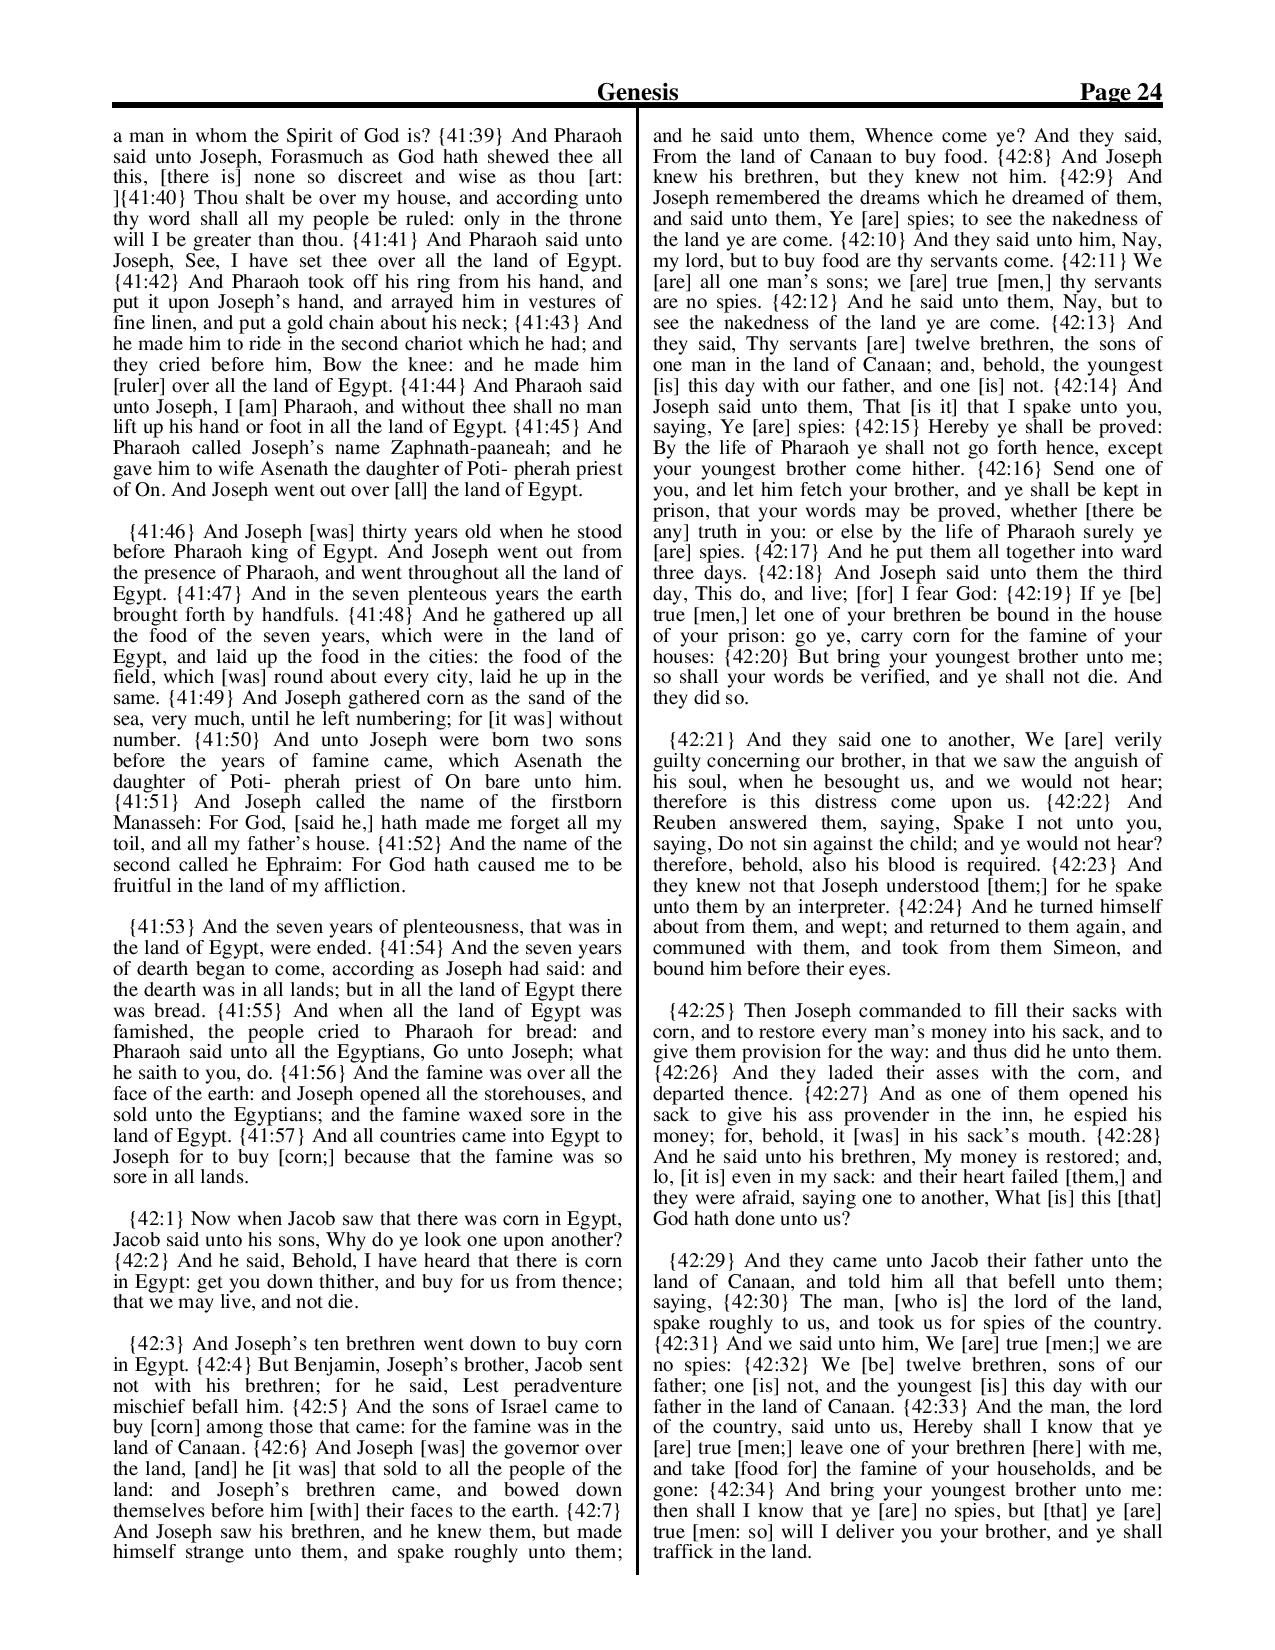 King-James-Bible-KJV-Bible-PDF-page-045